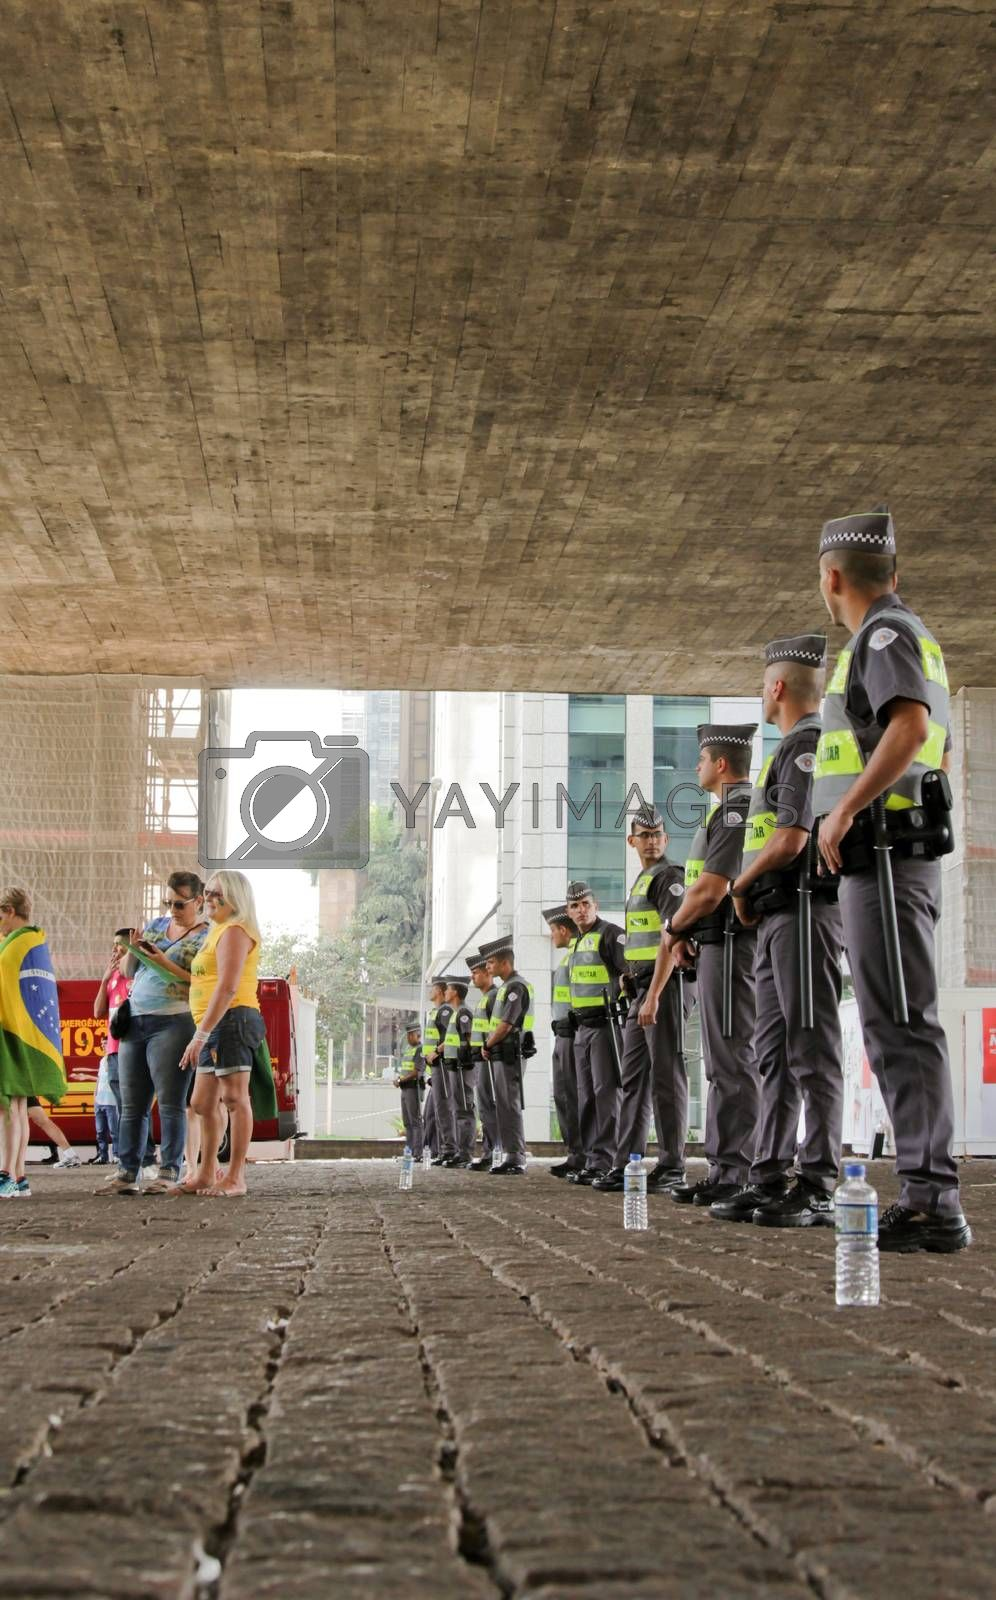 SAO PAULO, BRAZIL August 16, 2015: An unidentified group of cops take care of security in the protest against federal government corruption in Sao Paulo Brazil.